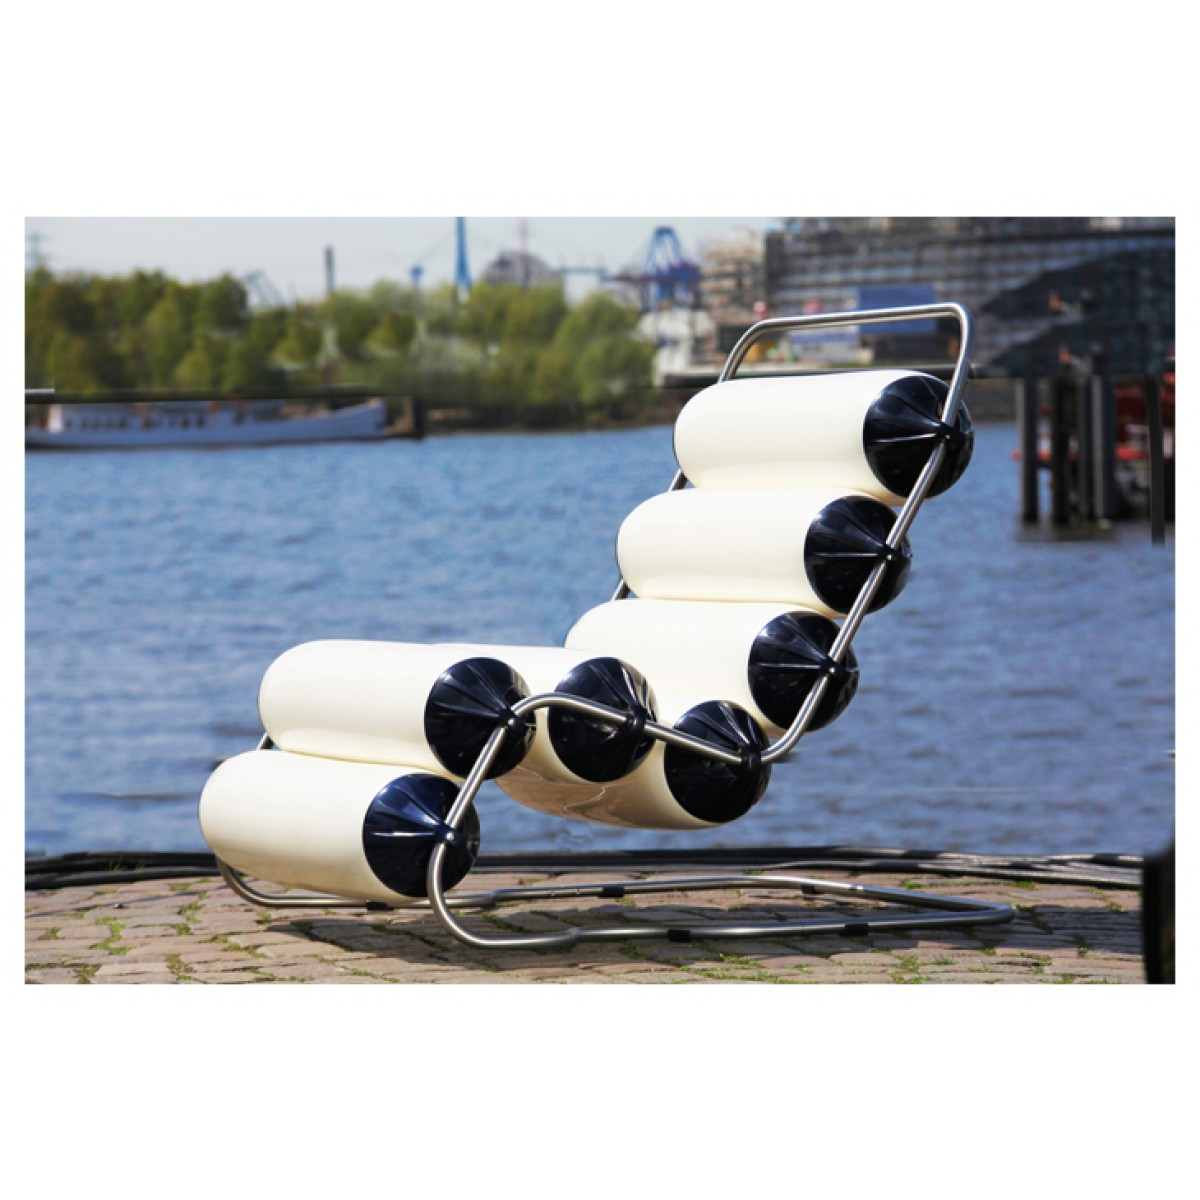 Ambientshop Swing-Air XXl-Lounge Freischwinger